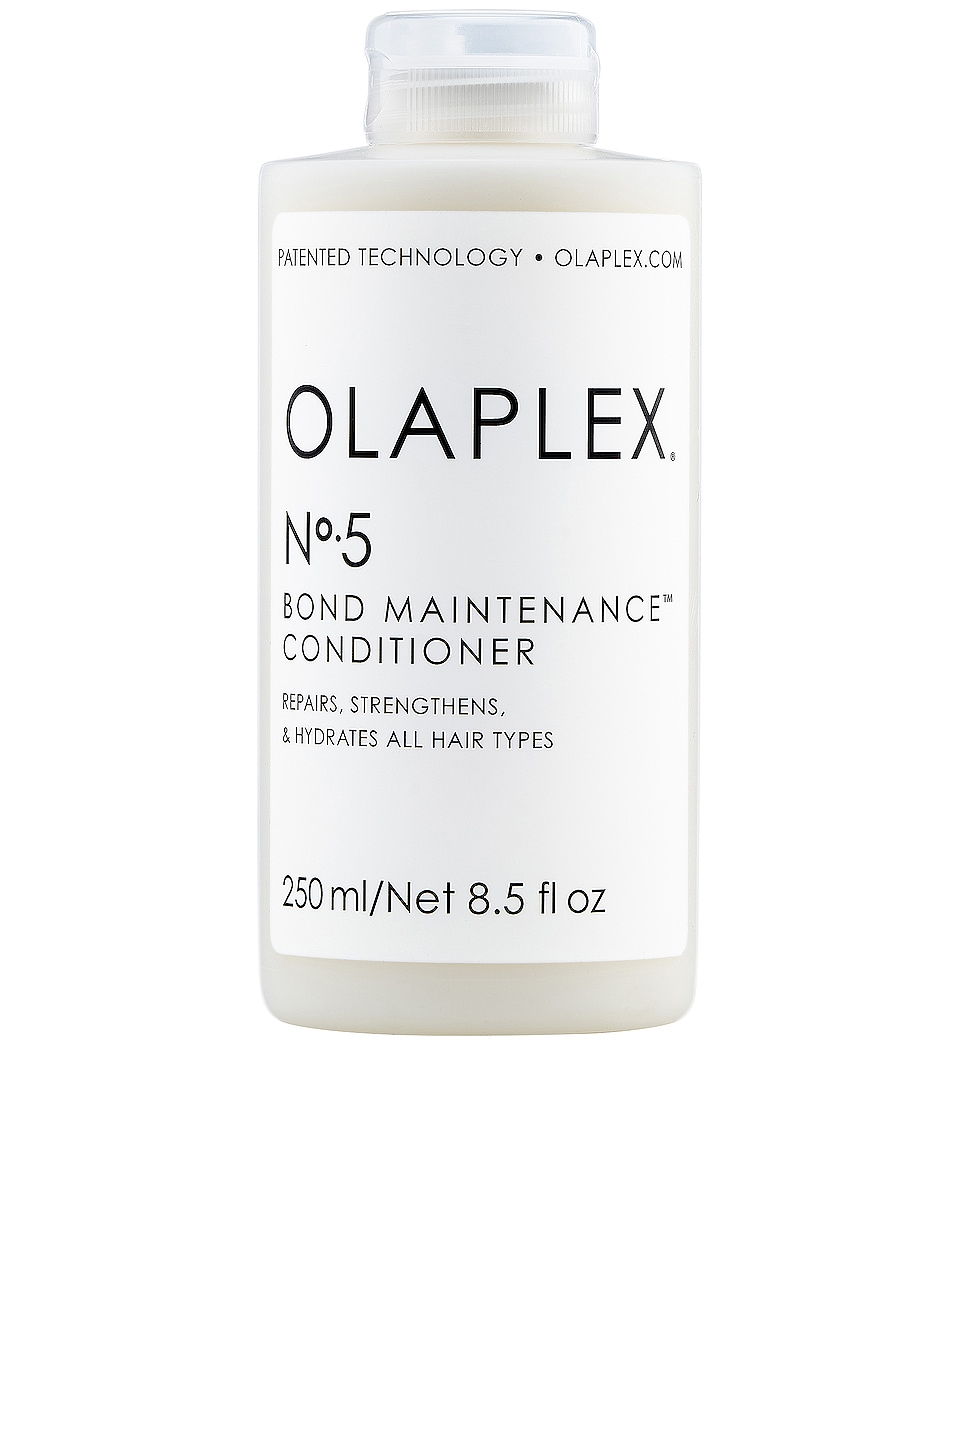 OLAPLEX ACONDICIONADOR NO. 5 BOND MAINTENANCE CONDITIONER